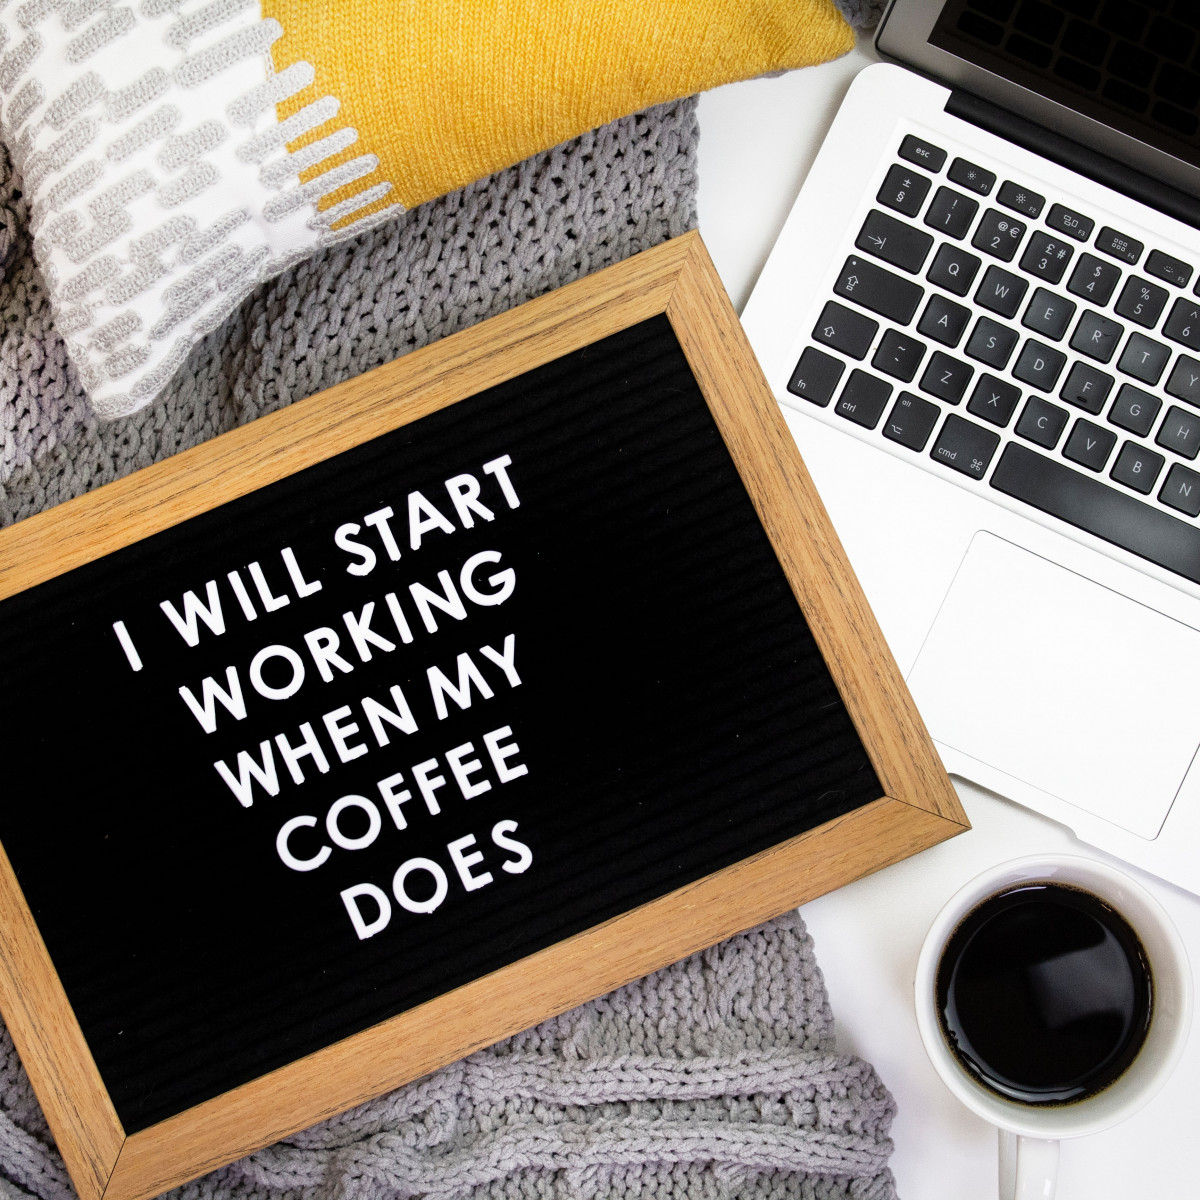 Will Work for Coffee Image by Emma Matthews